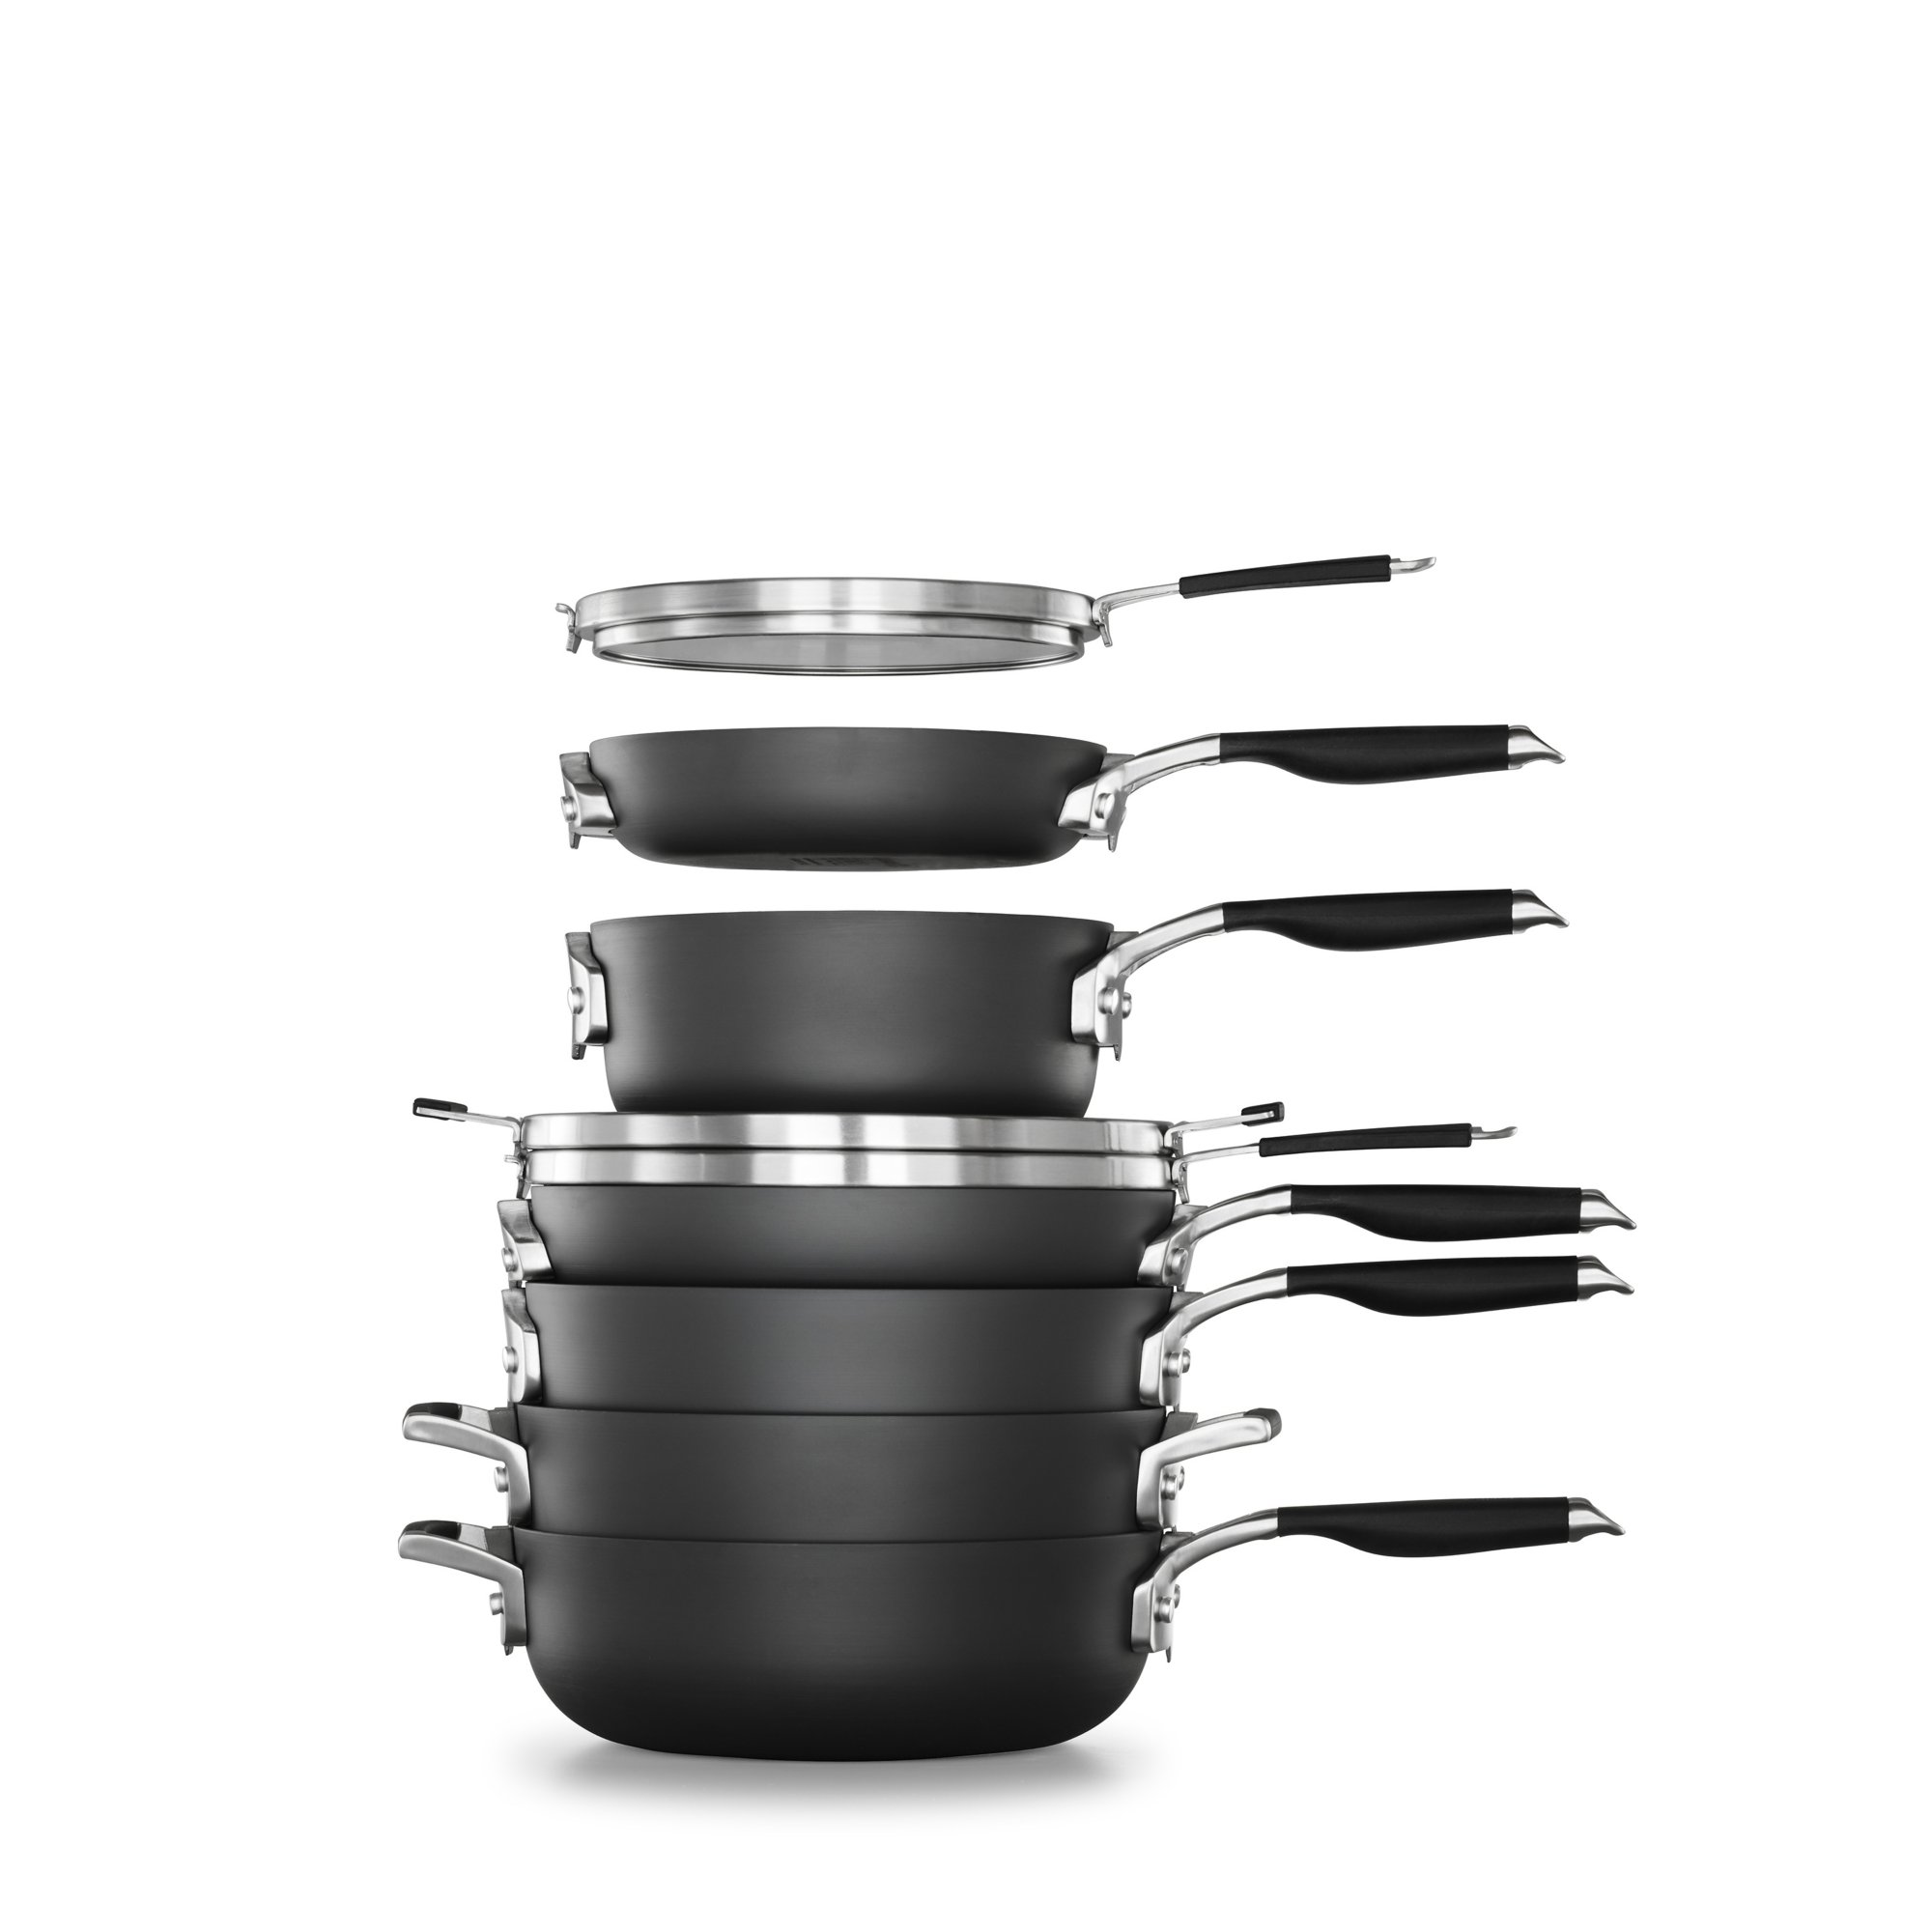 Select by Calphalon Space Saving Hard-Anodized Nonstick 9-Piece Cookware Set